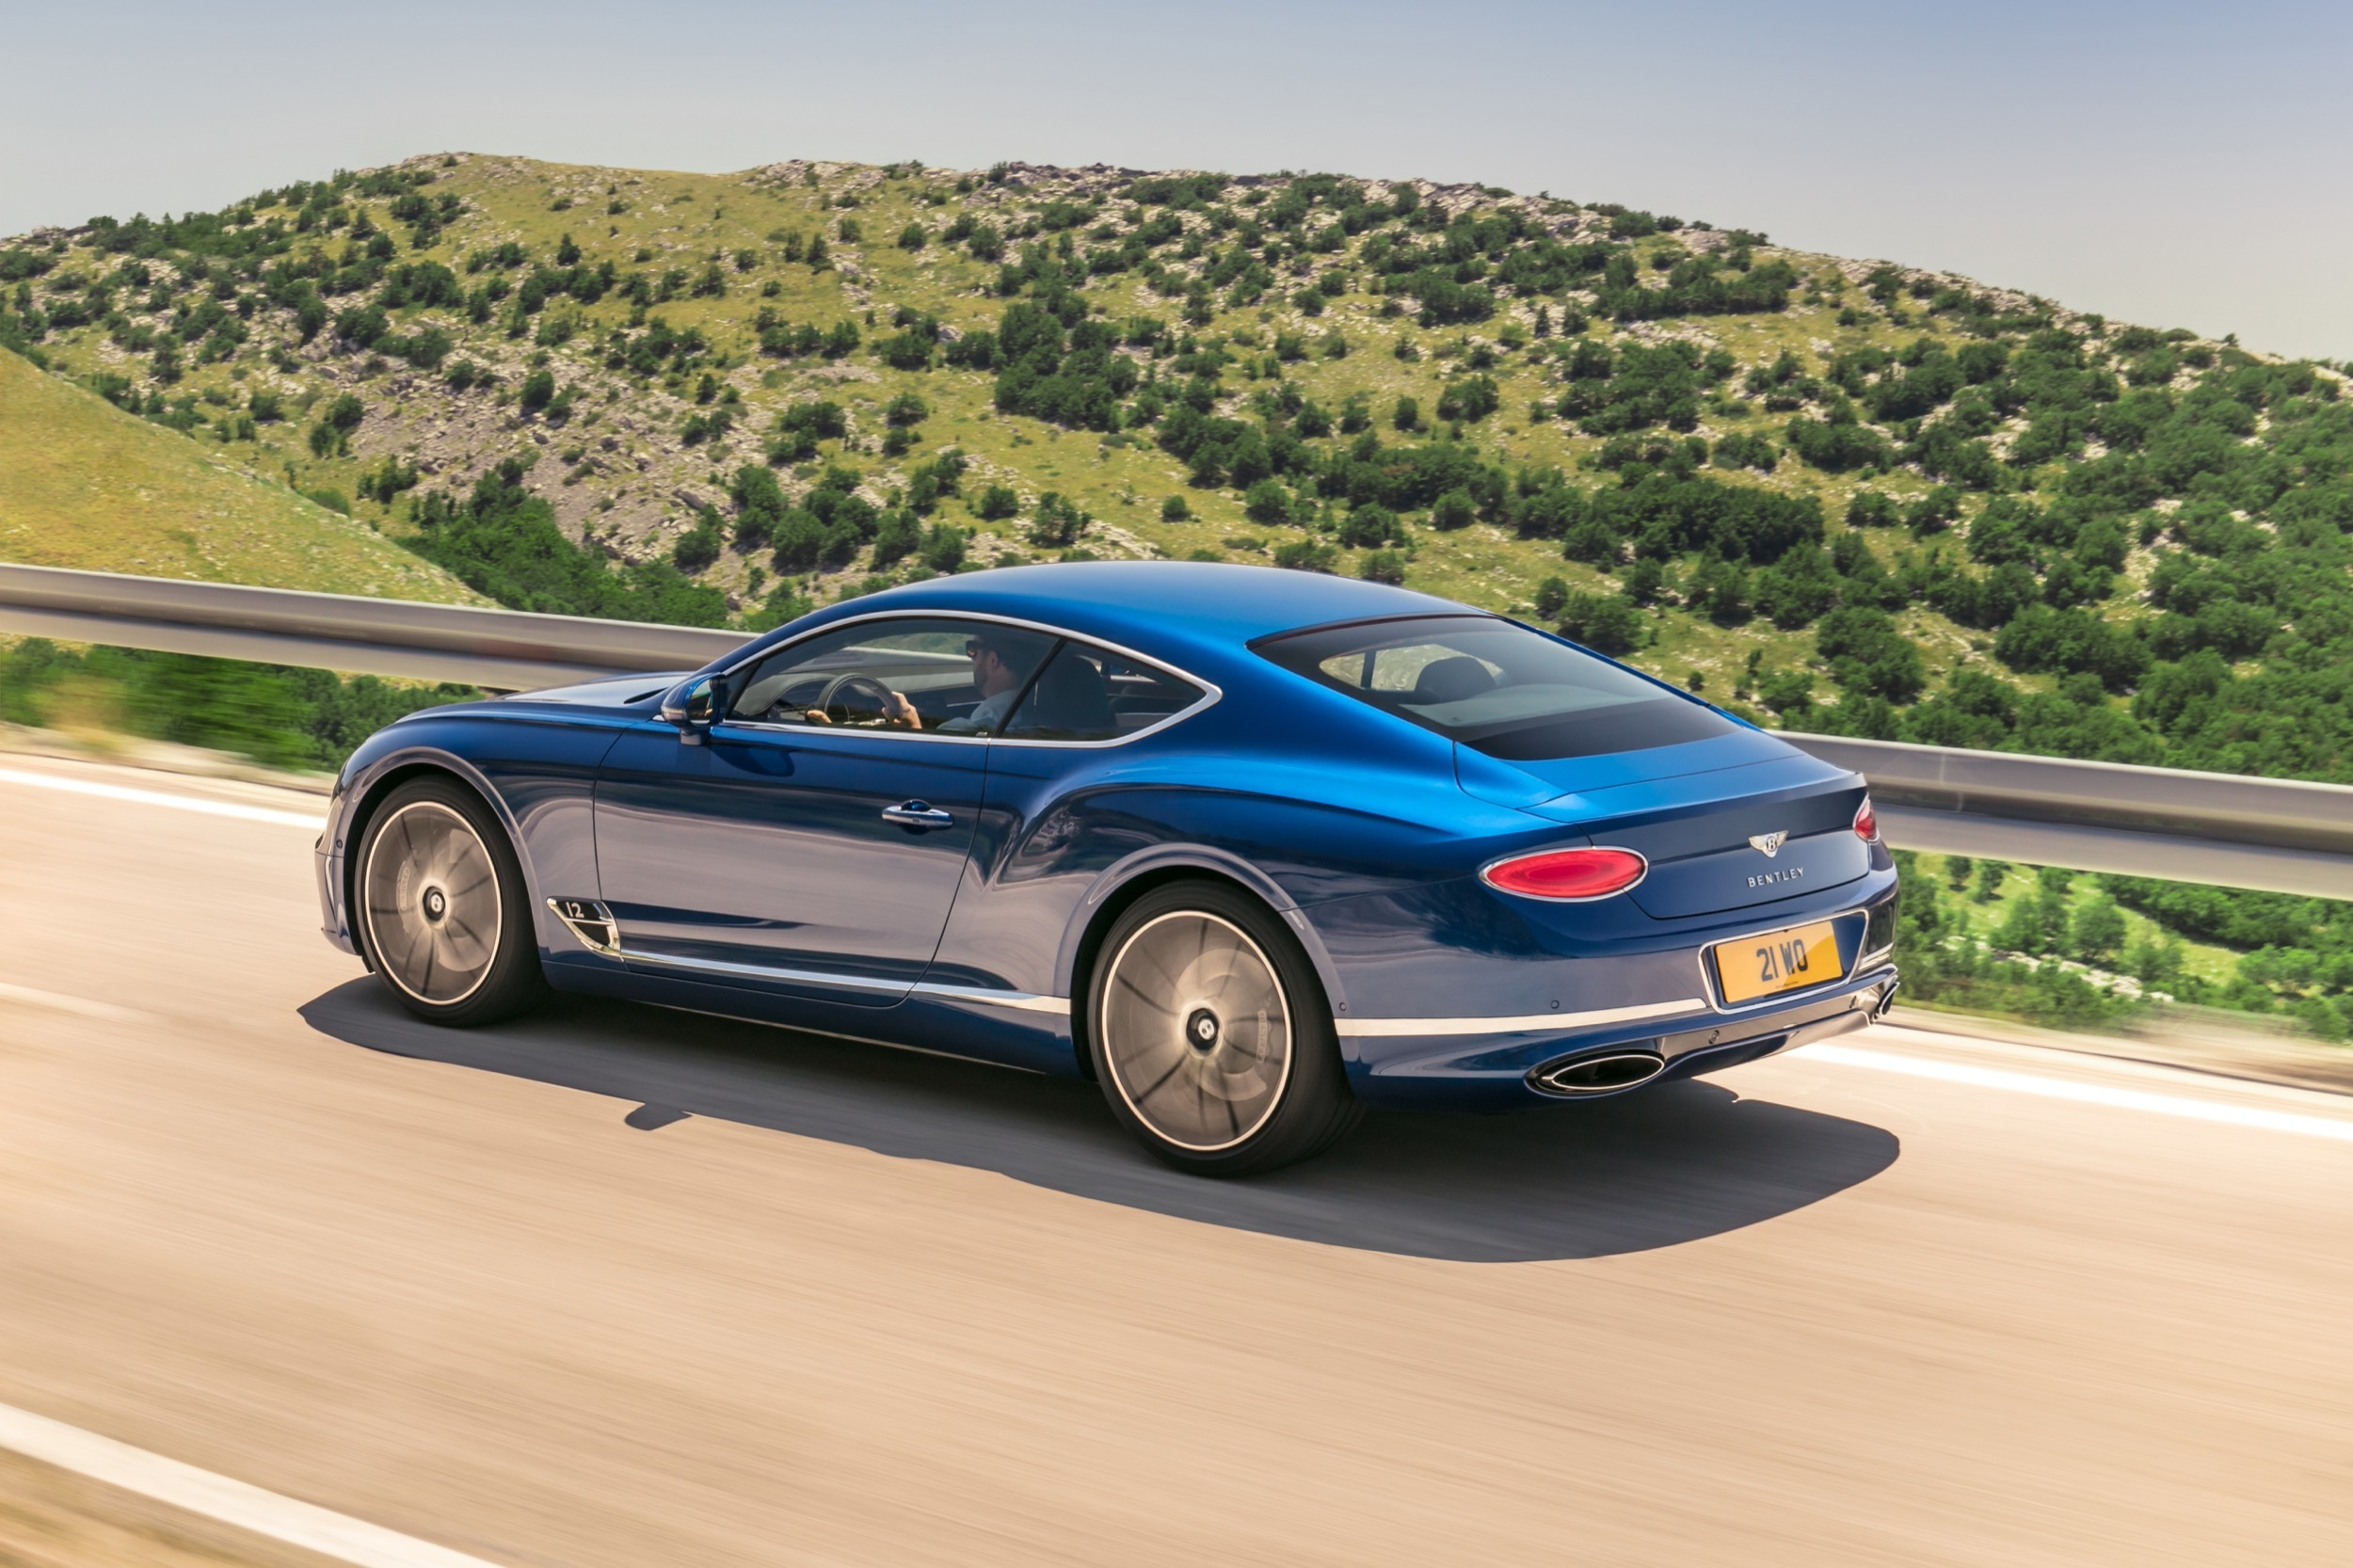 for top quarter guide sale car used continental gear rear buyers spur review bentley flying reviews prevnext